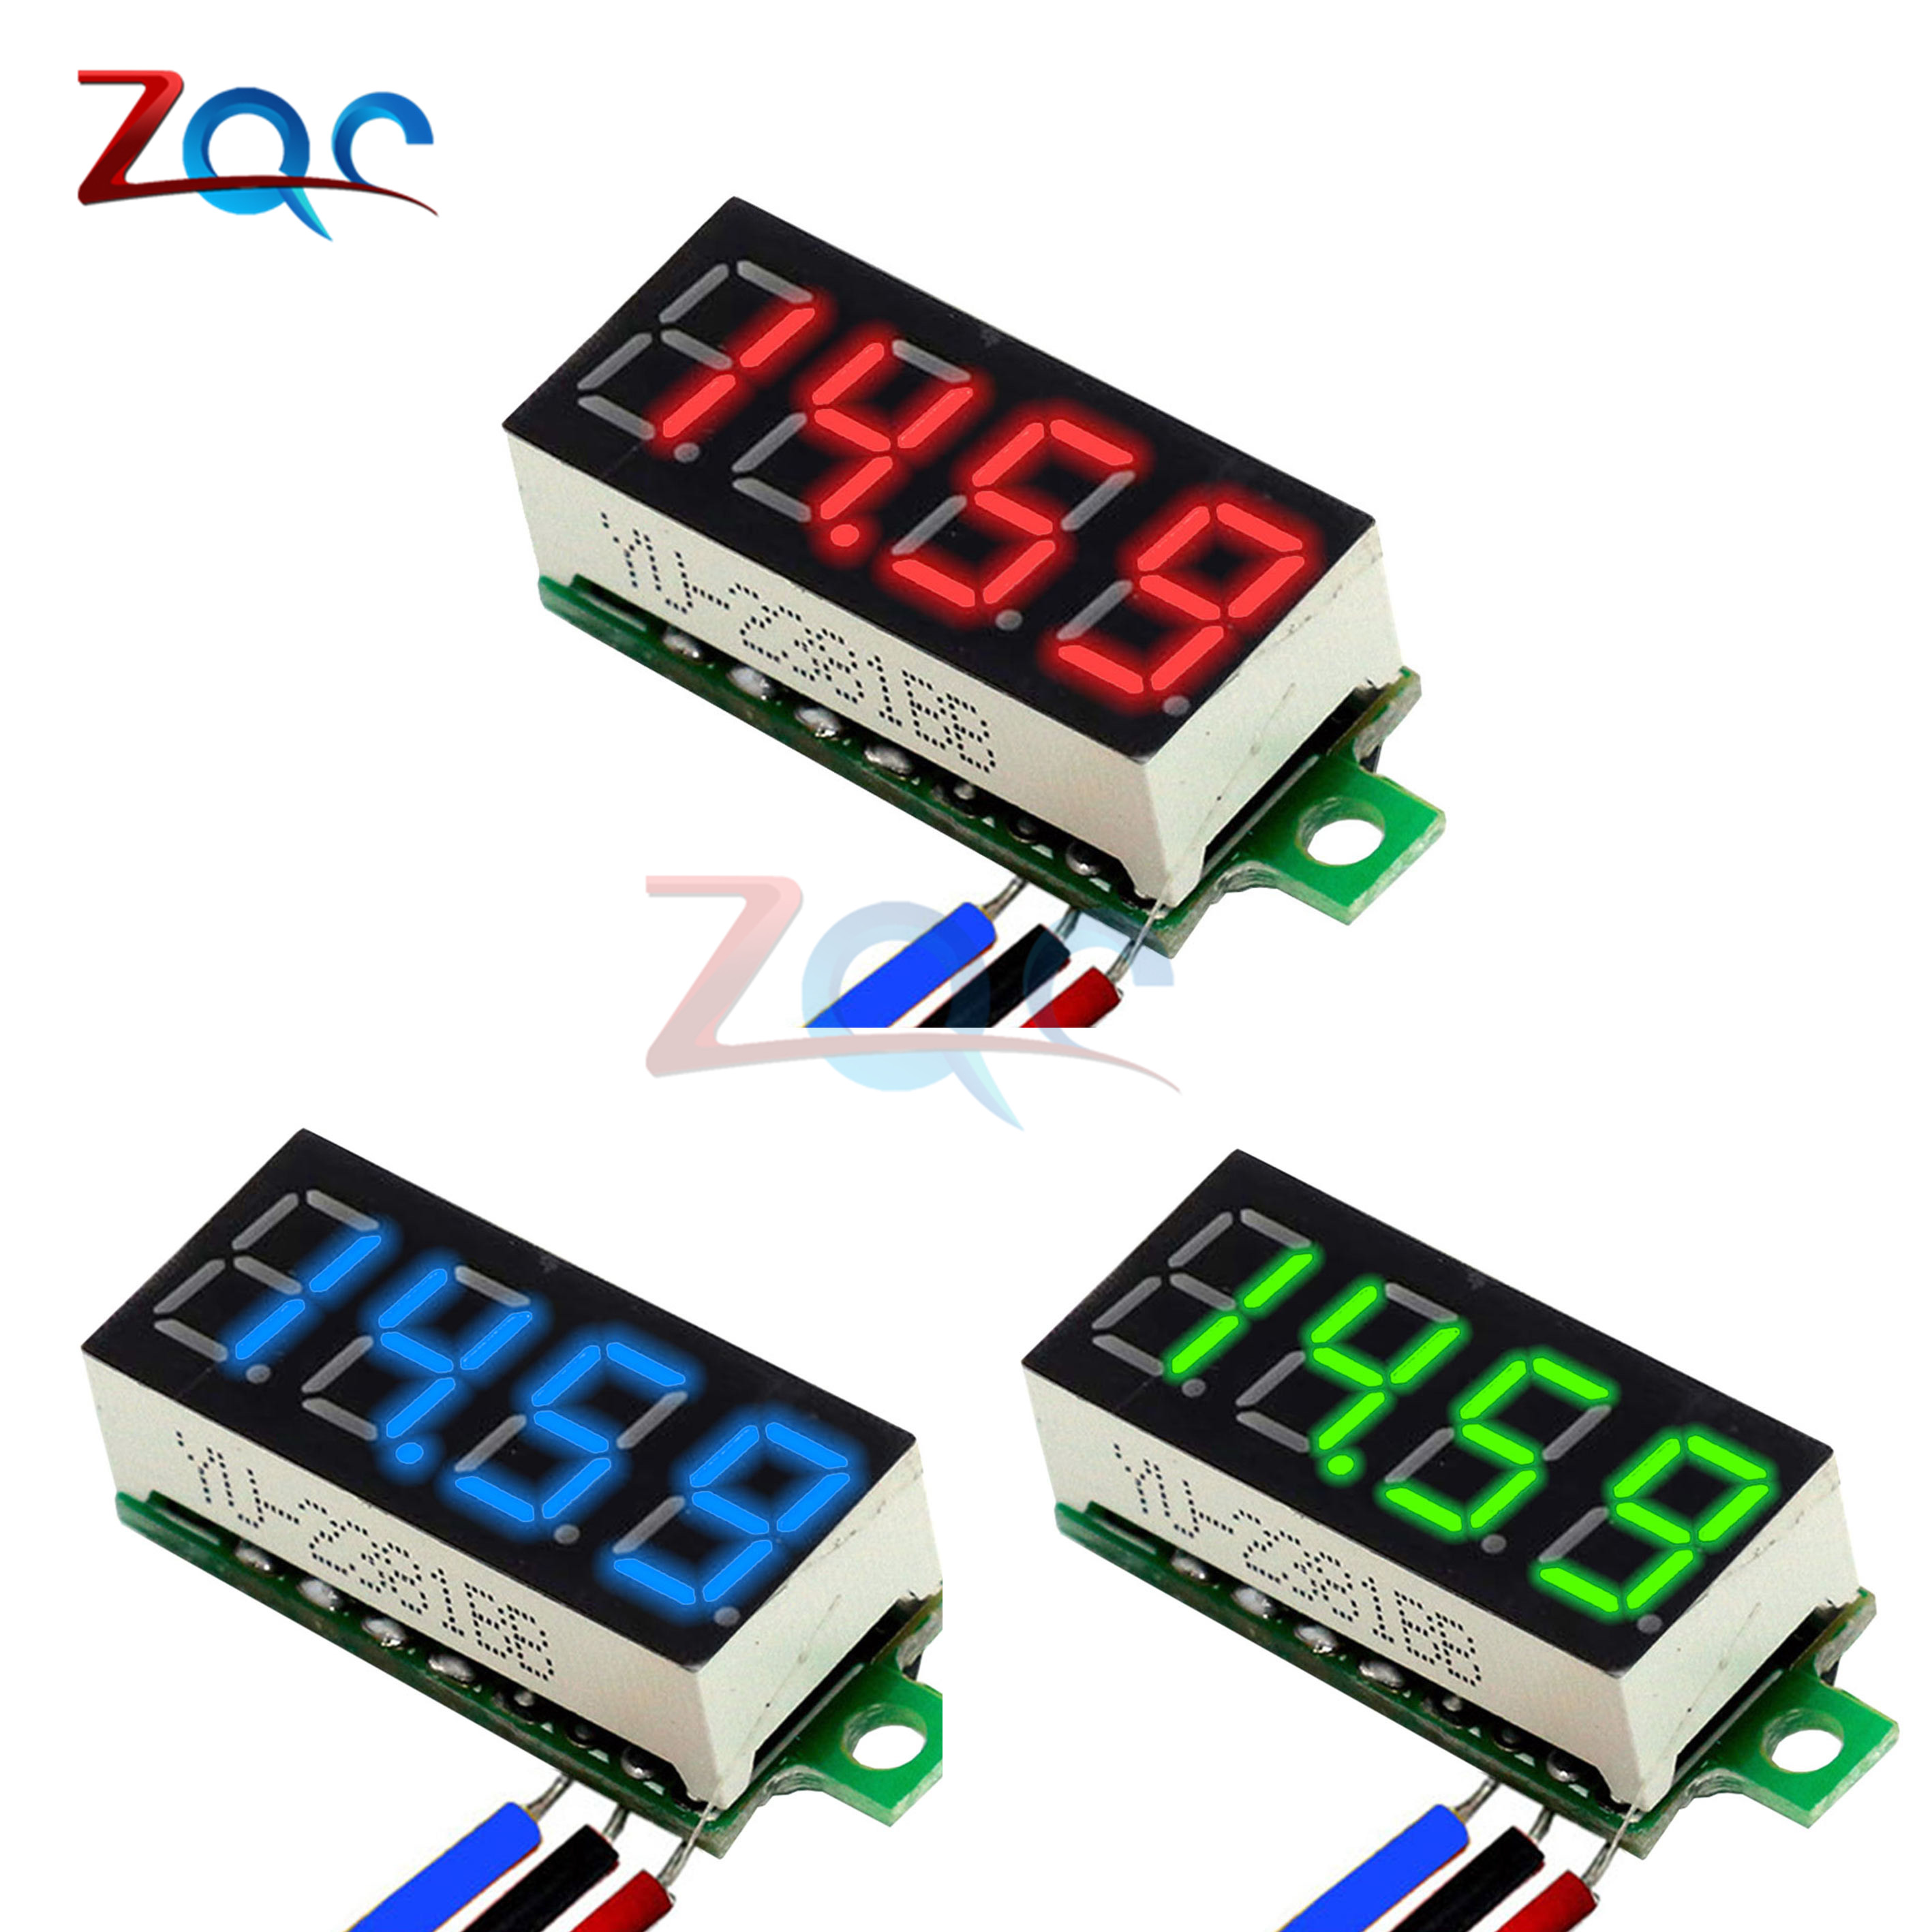 4 Bit 0.36 Inch Mini Digital Voltmeter 0-100V DC Volt Voltage Meter LED Panel Electric Voltage Tester Gauge 3 Wires 12V 24V 48V